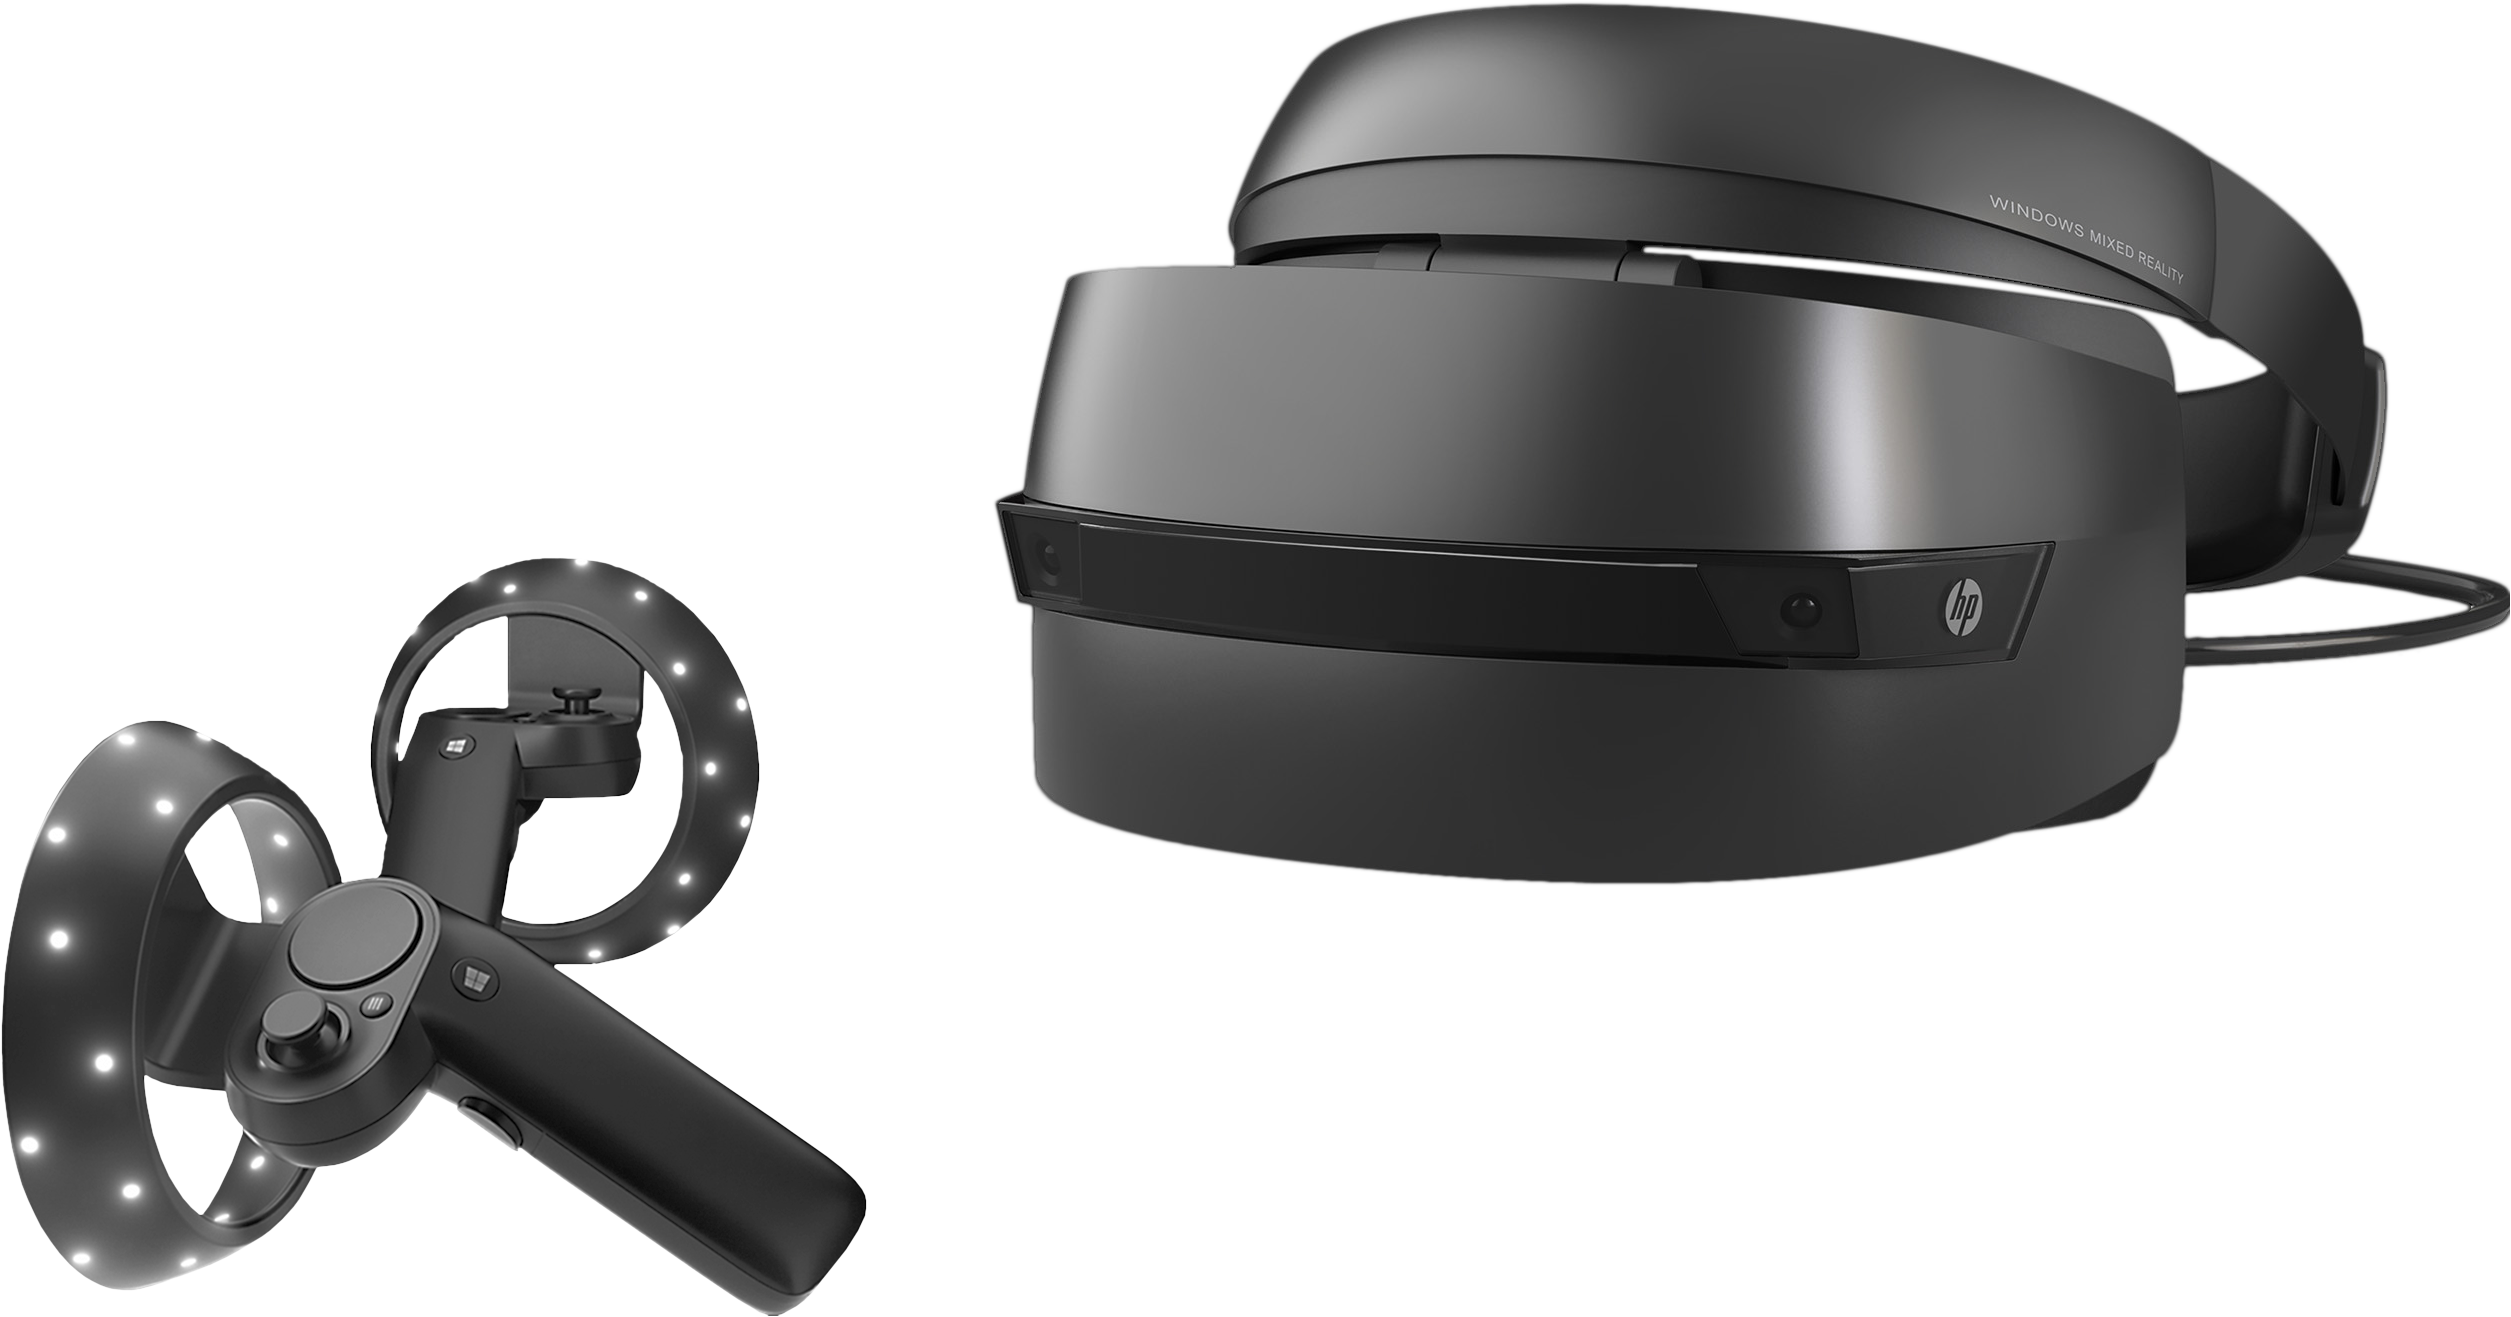 HP Windows Mixed Reality Headset with Motion Controllers